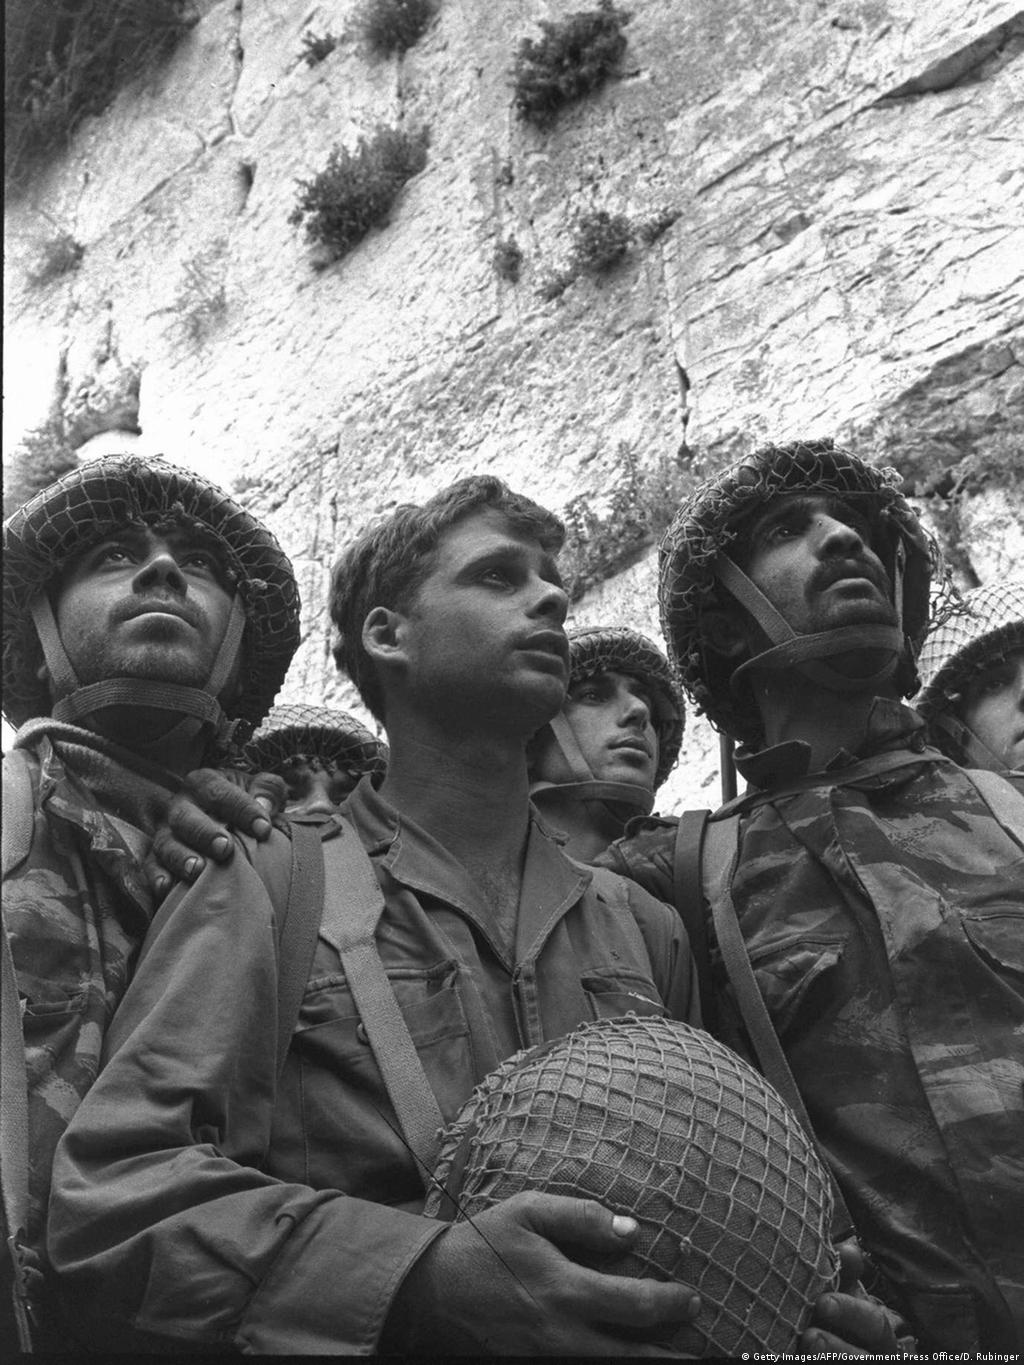 When Israelis started to talk about the occupation | Middle East